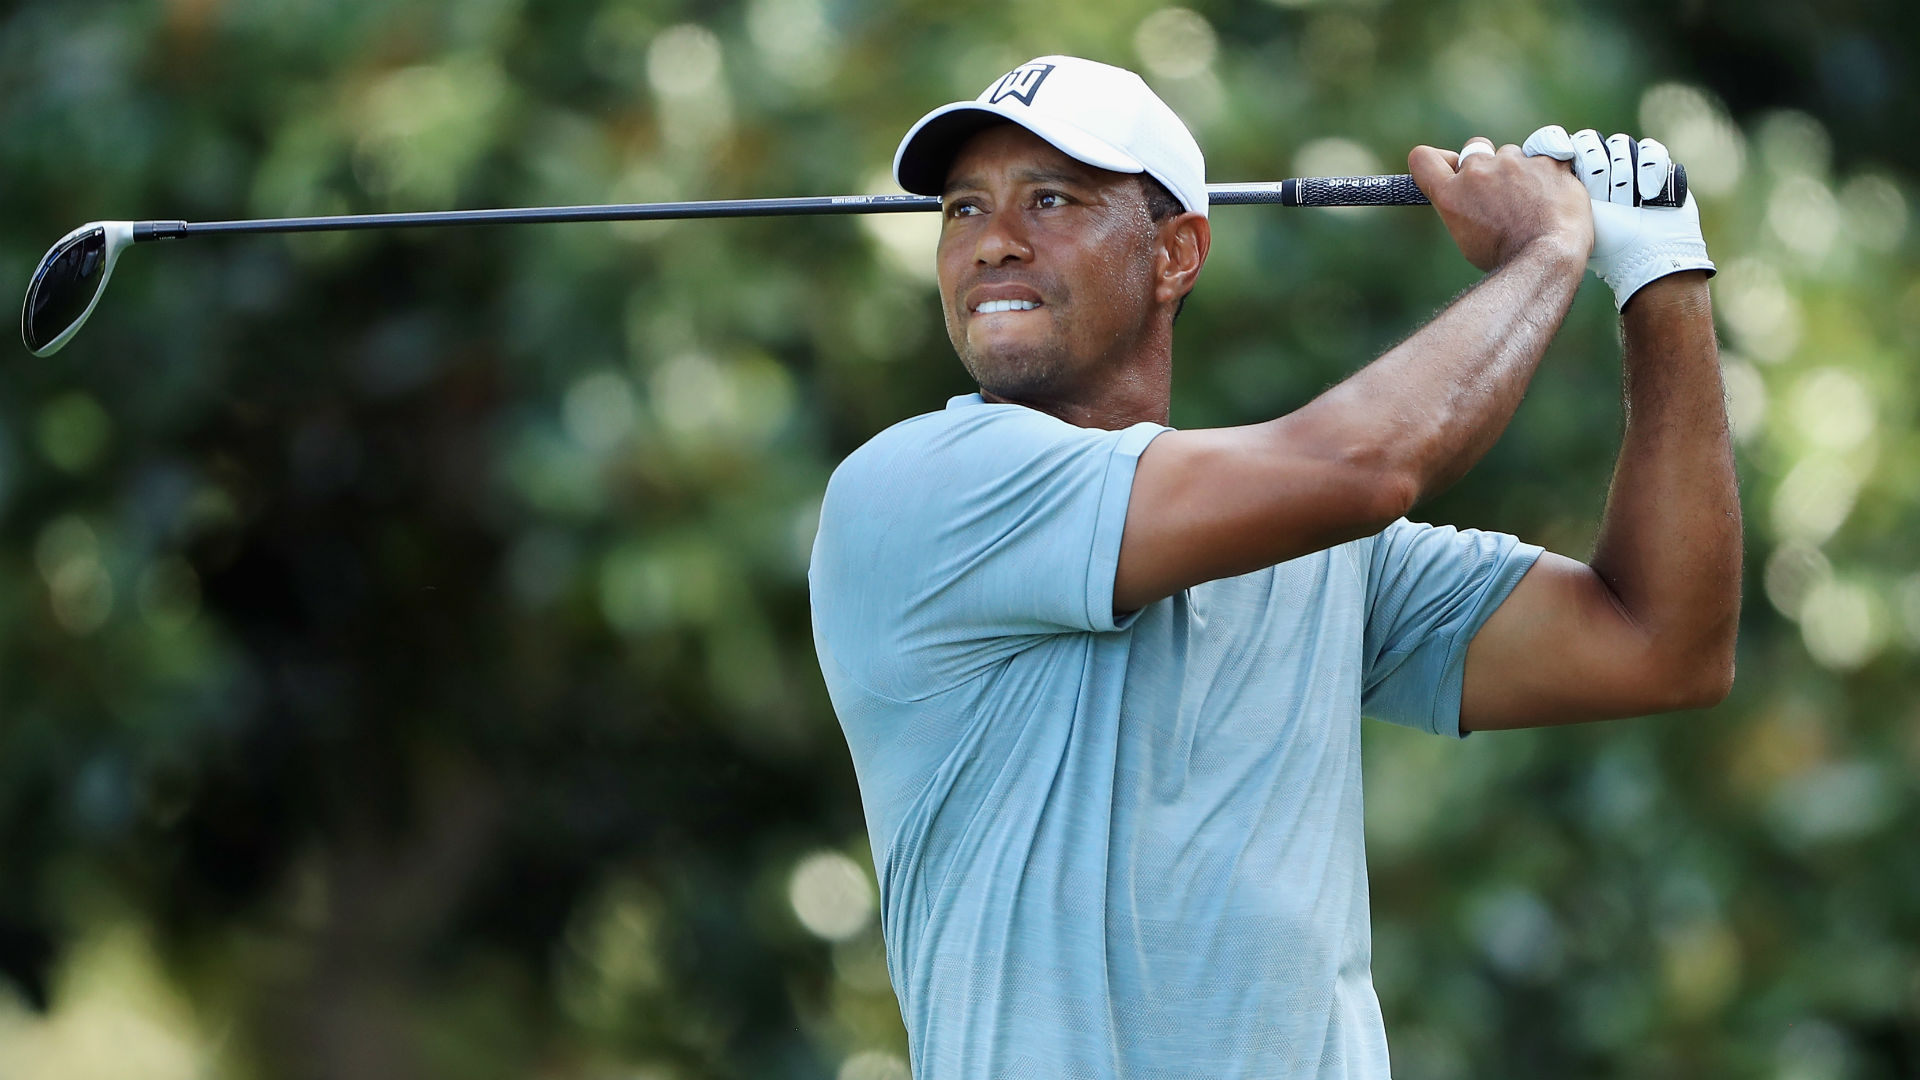 Tiger Woods' Score, Live Highlights From Tour Championship